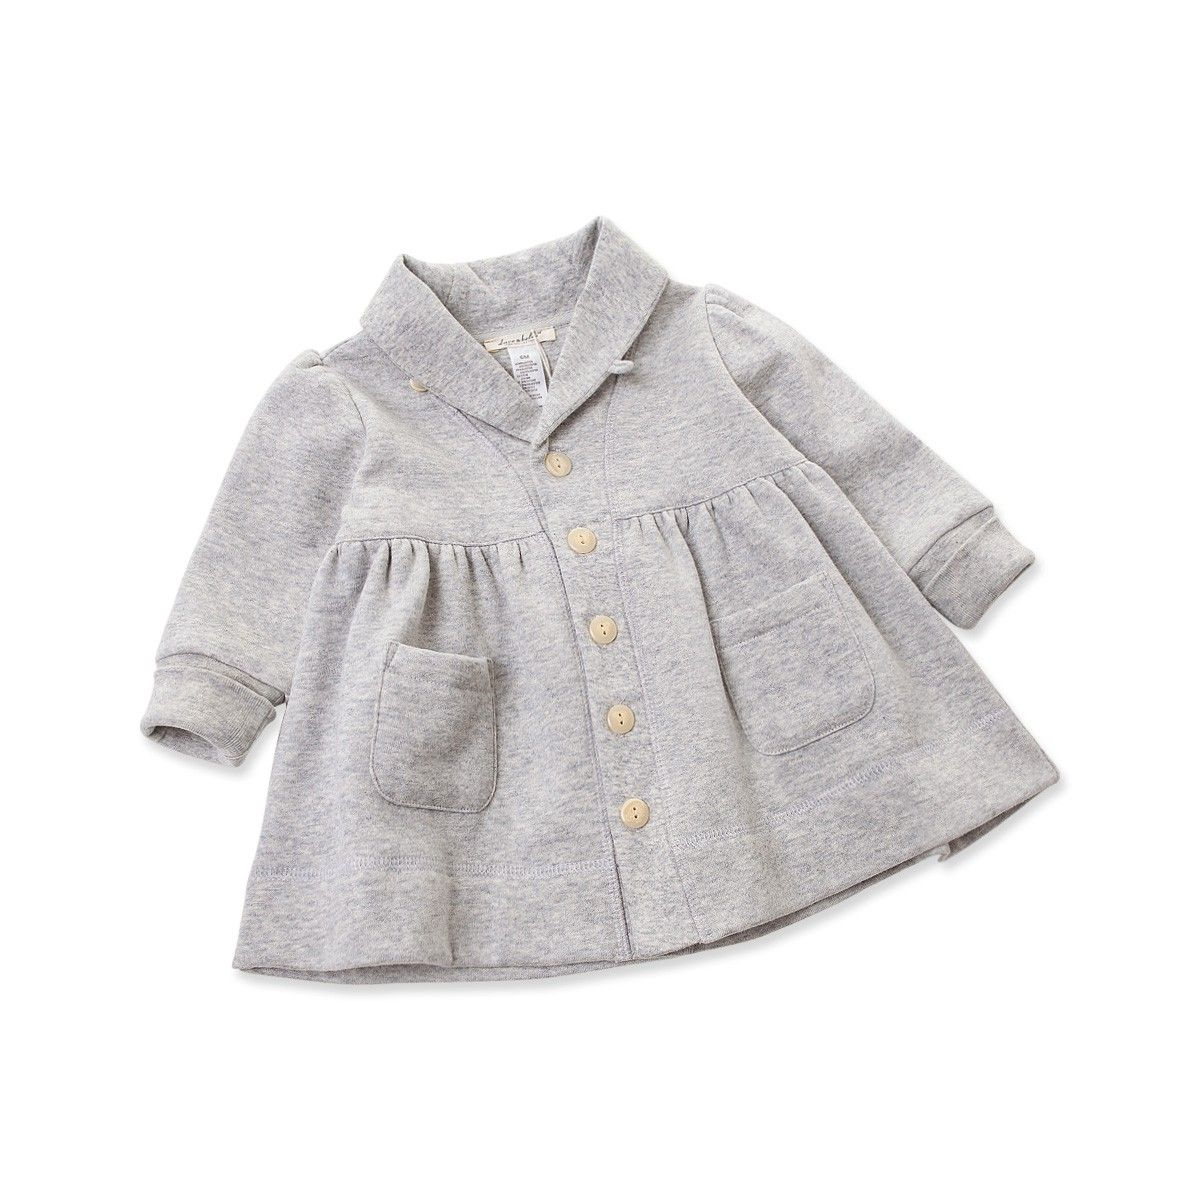 Baby Coat - Coats and Jackets - Baby girls | Dave Bella Kids ...